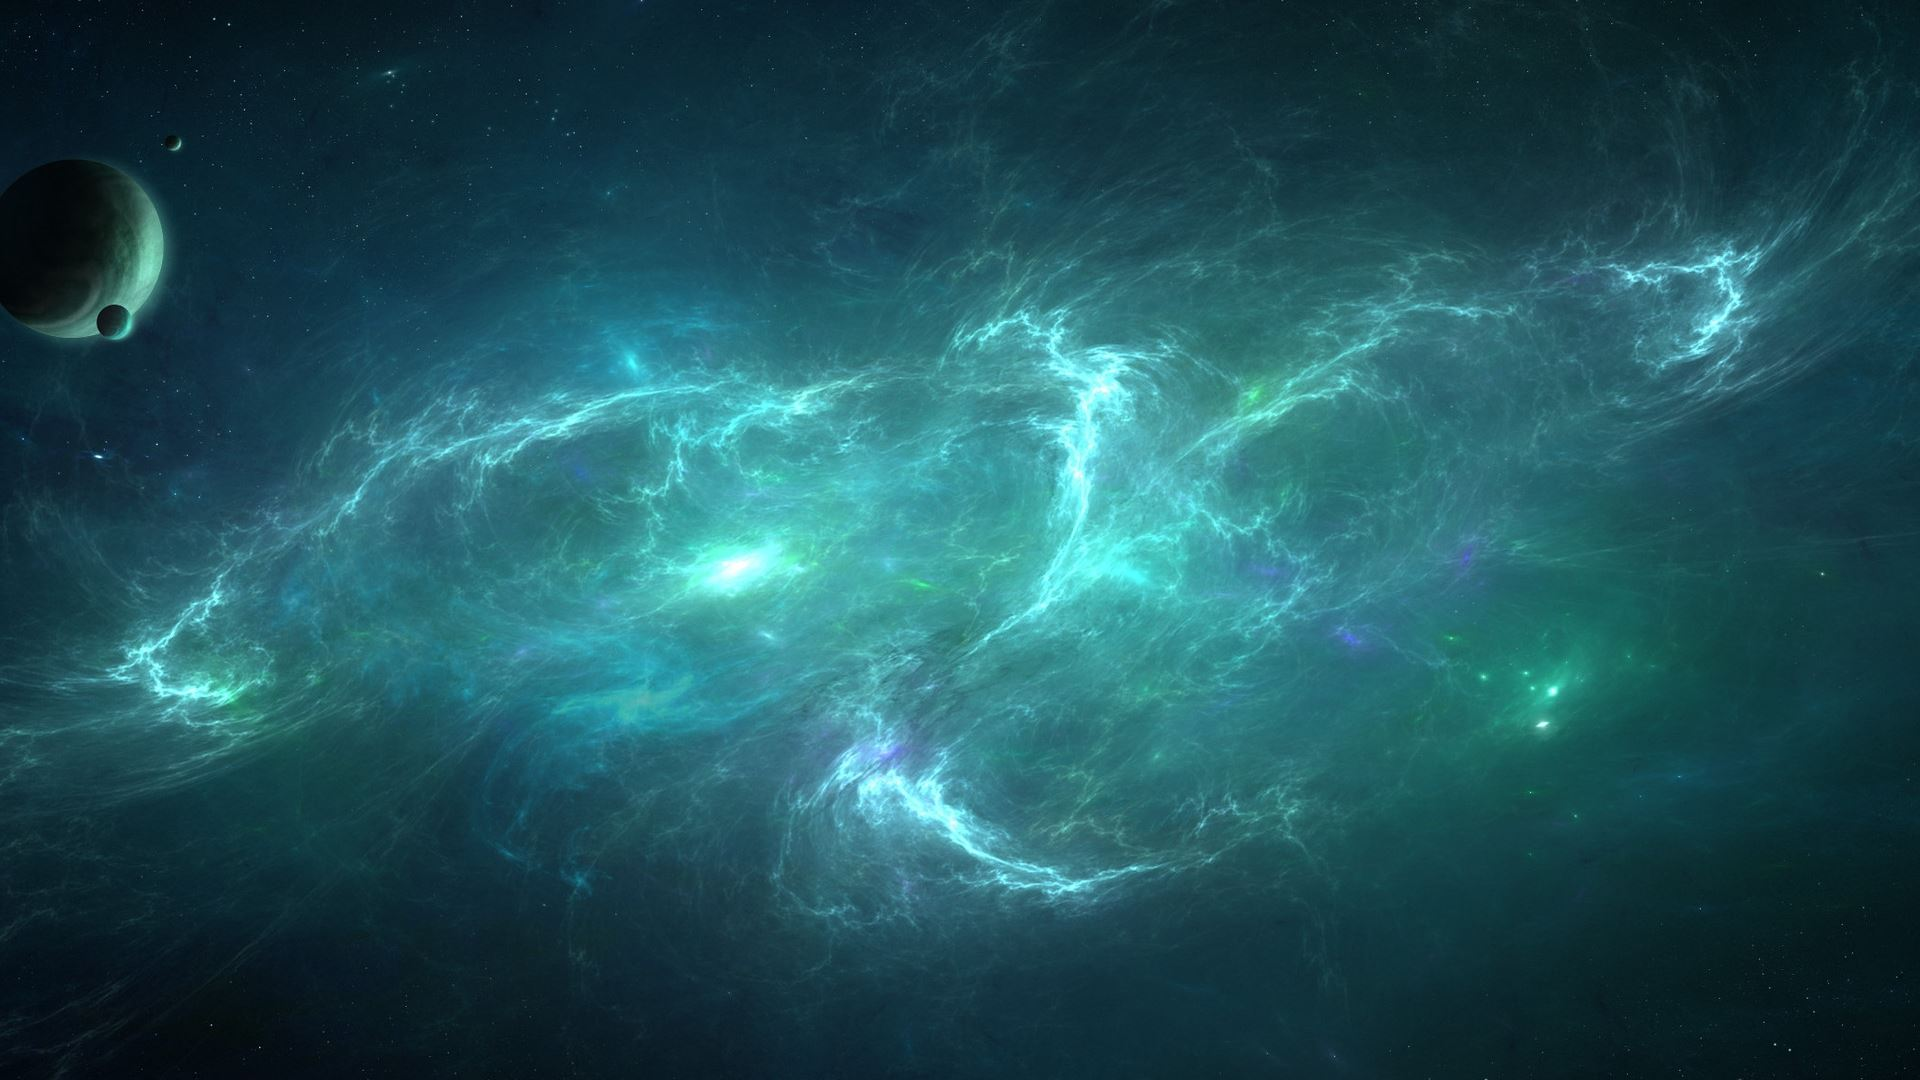 galactic nebula 1 mac wallpaper download free mac wallpapers download